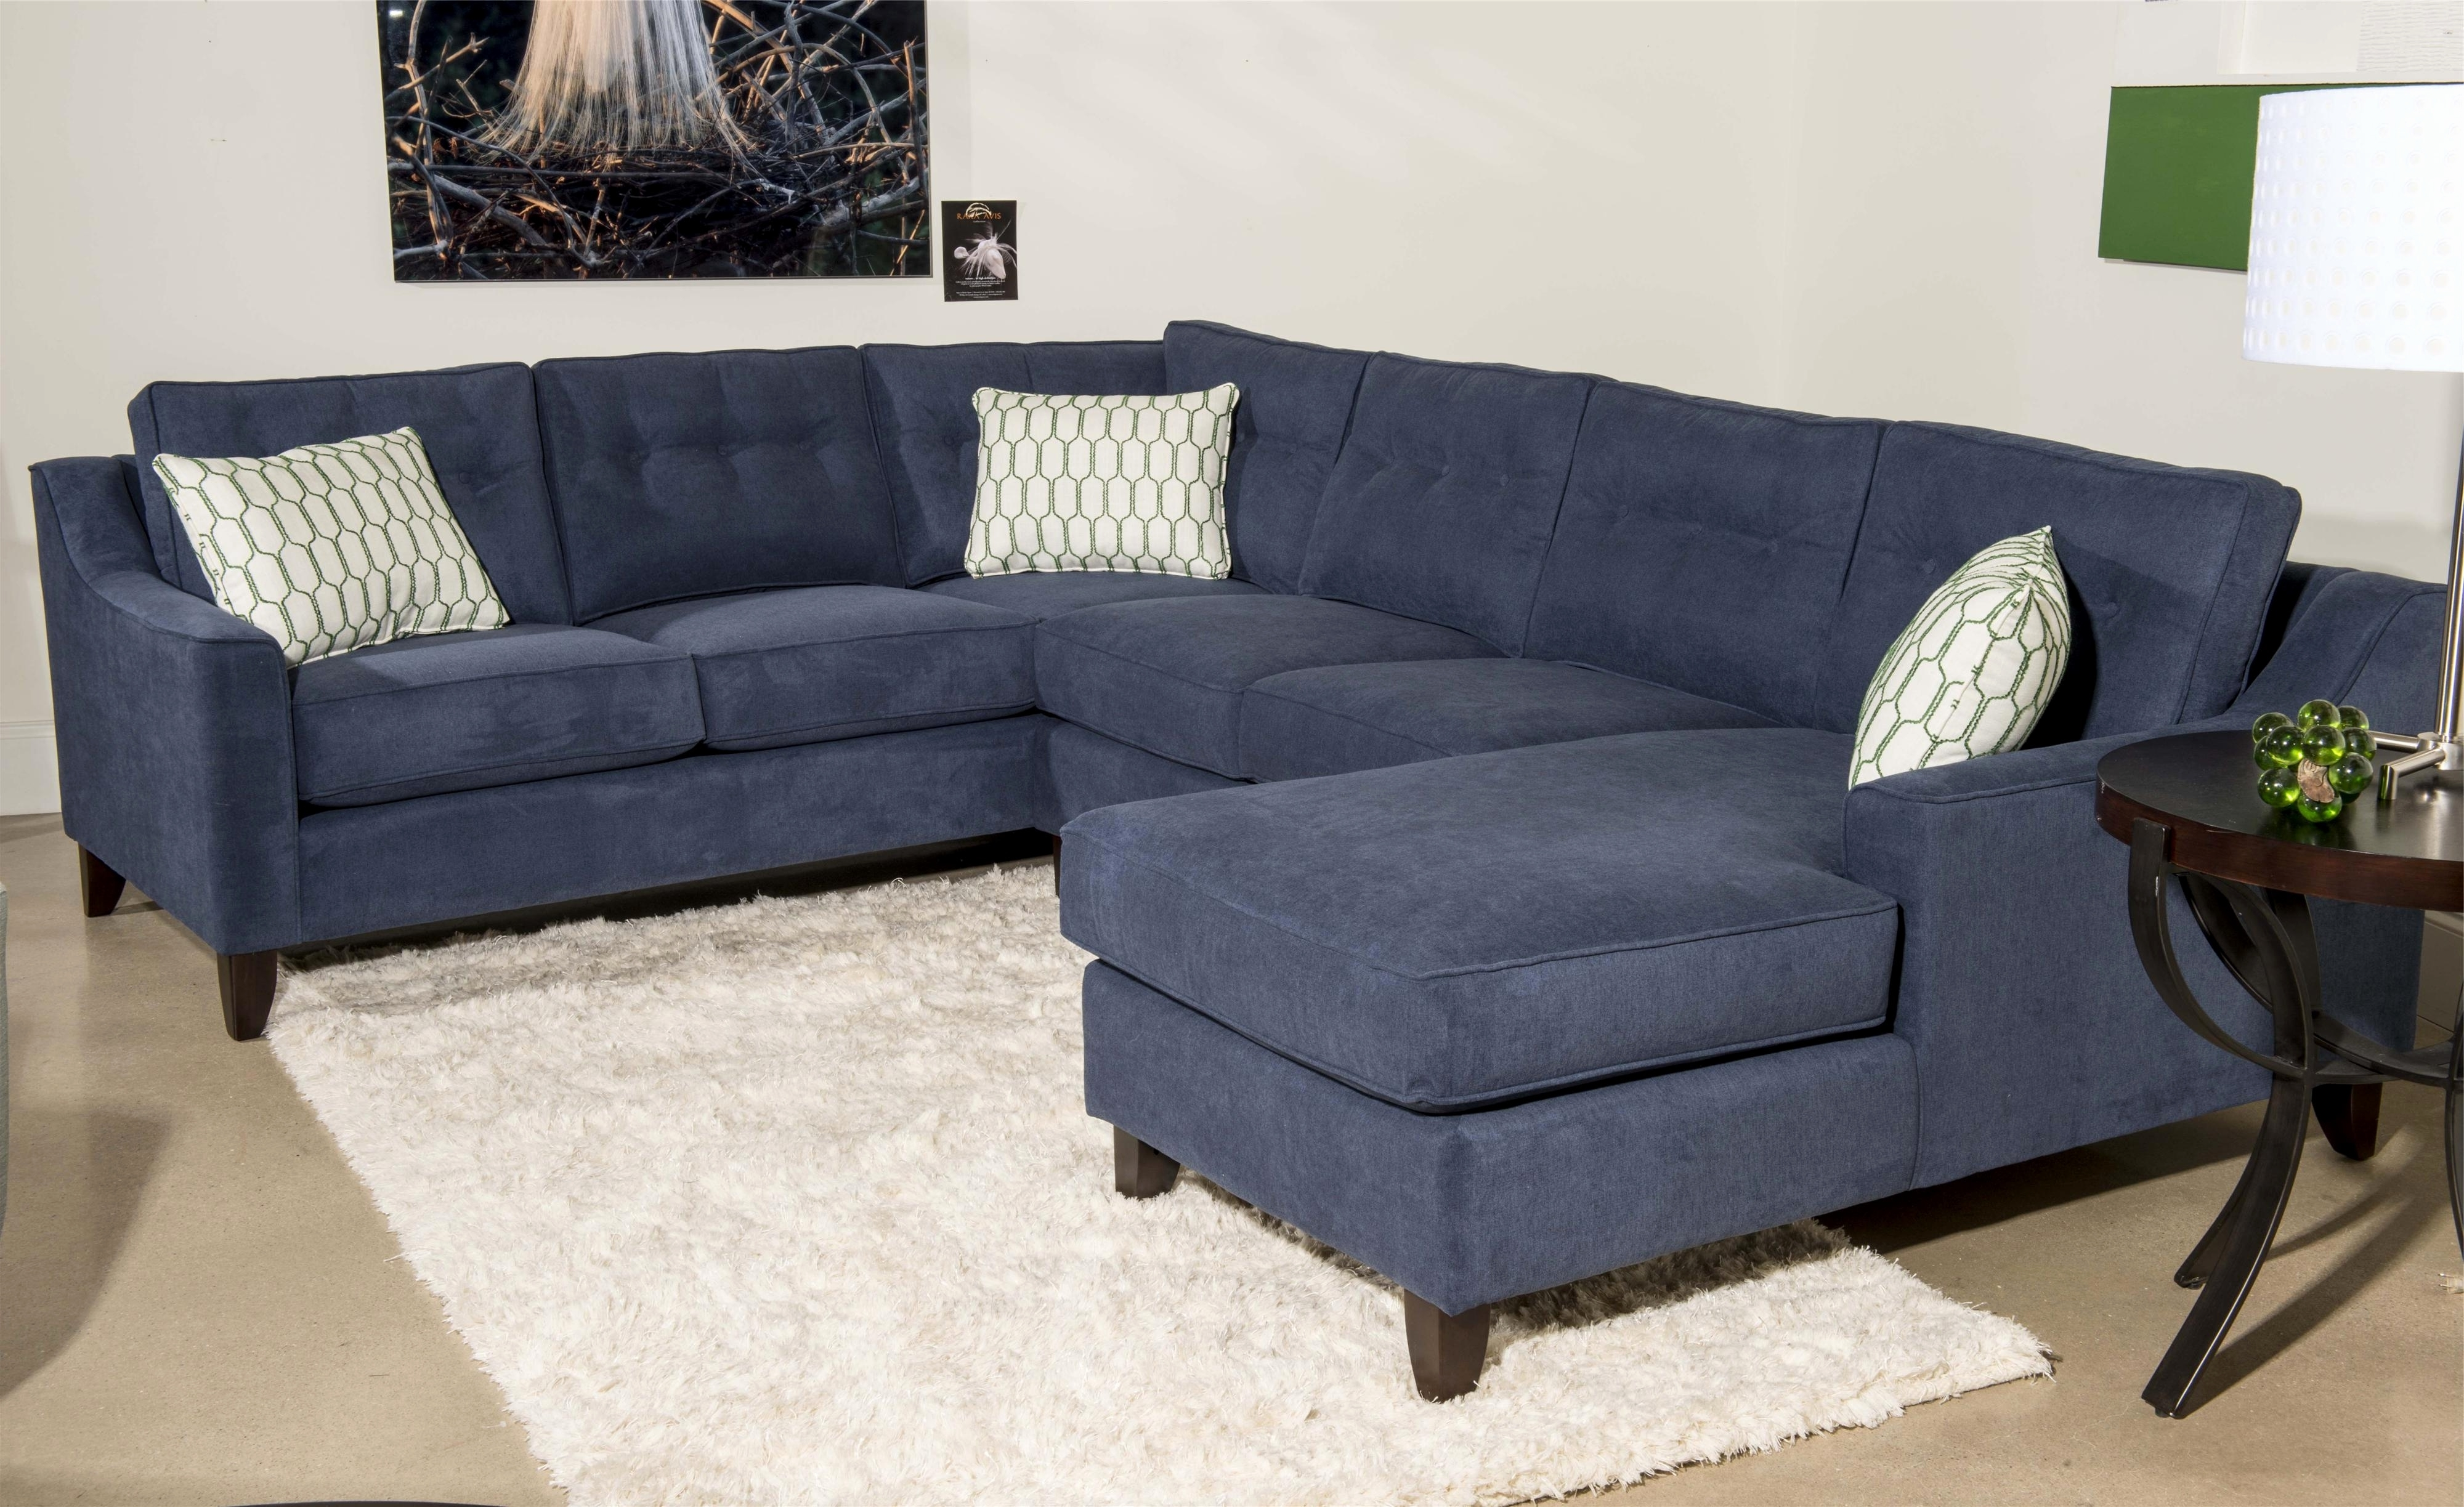 Luxury U Shaped Sectional With 2 Chaise 2018 – Couches And Sofas Ideas Intended For Fashionable Blue U Shaped Sectionals (View 7 of 15)